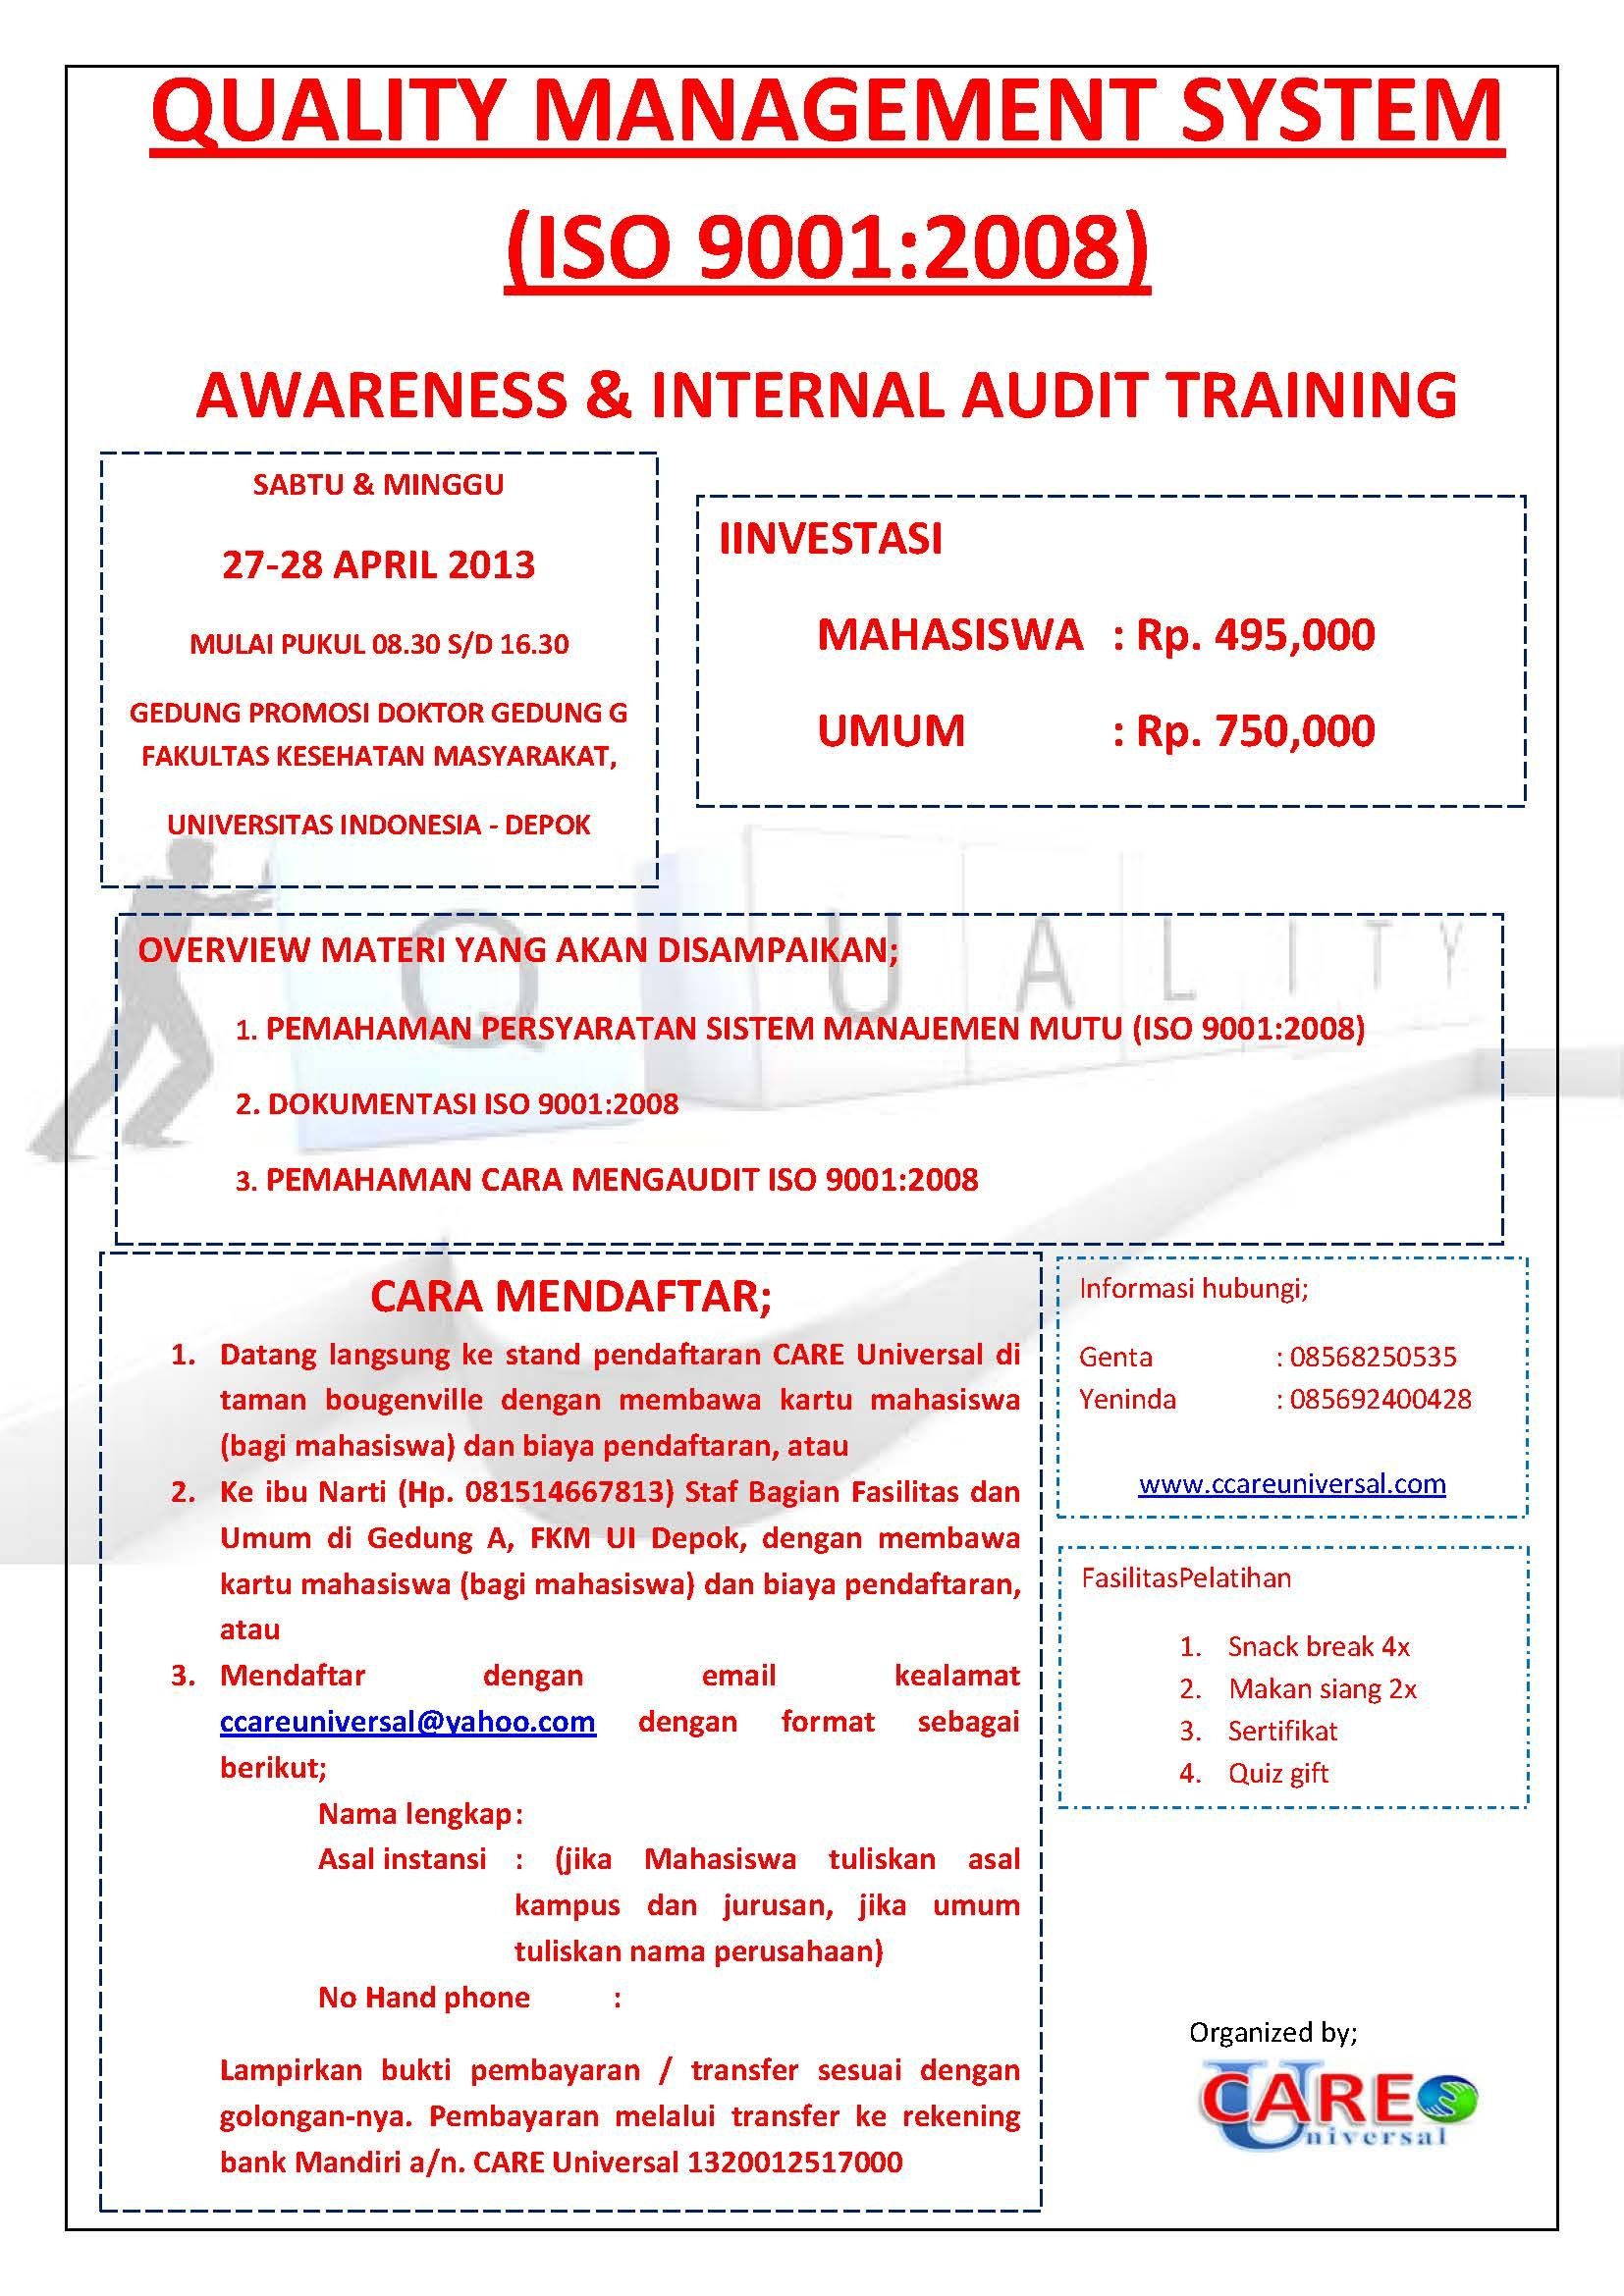 Yuuk ikut training ISO 9001:2008 dan Internal Audit